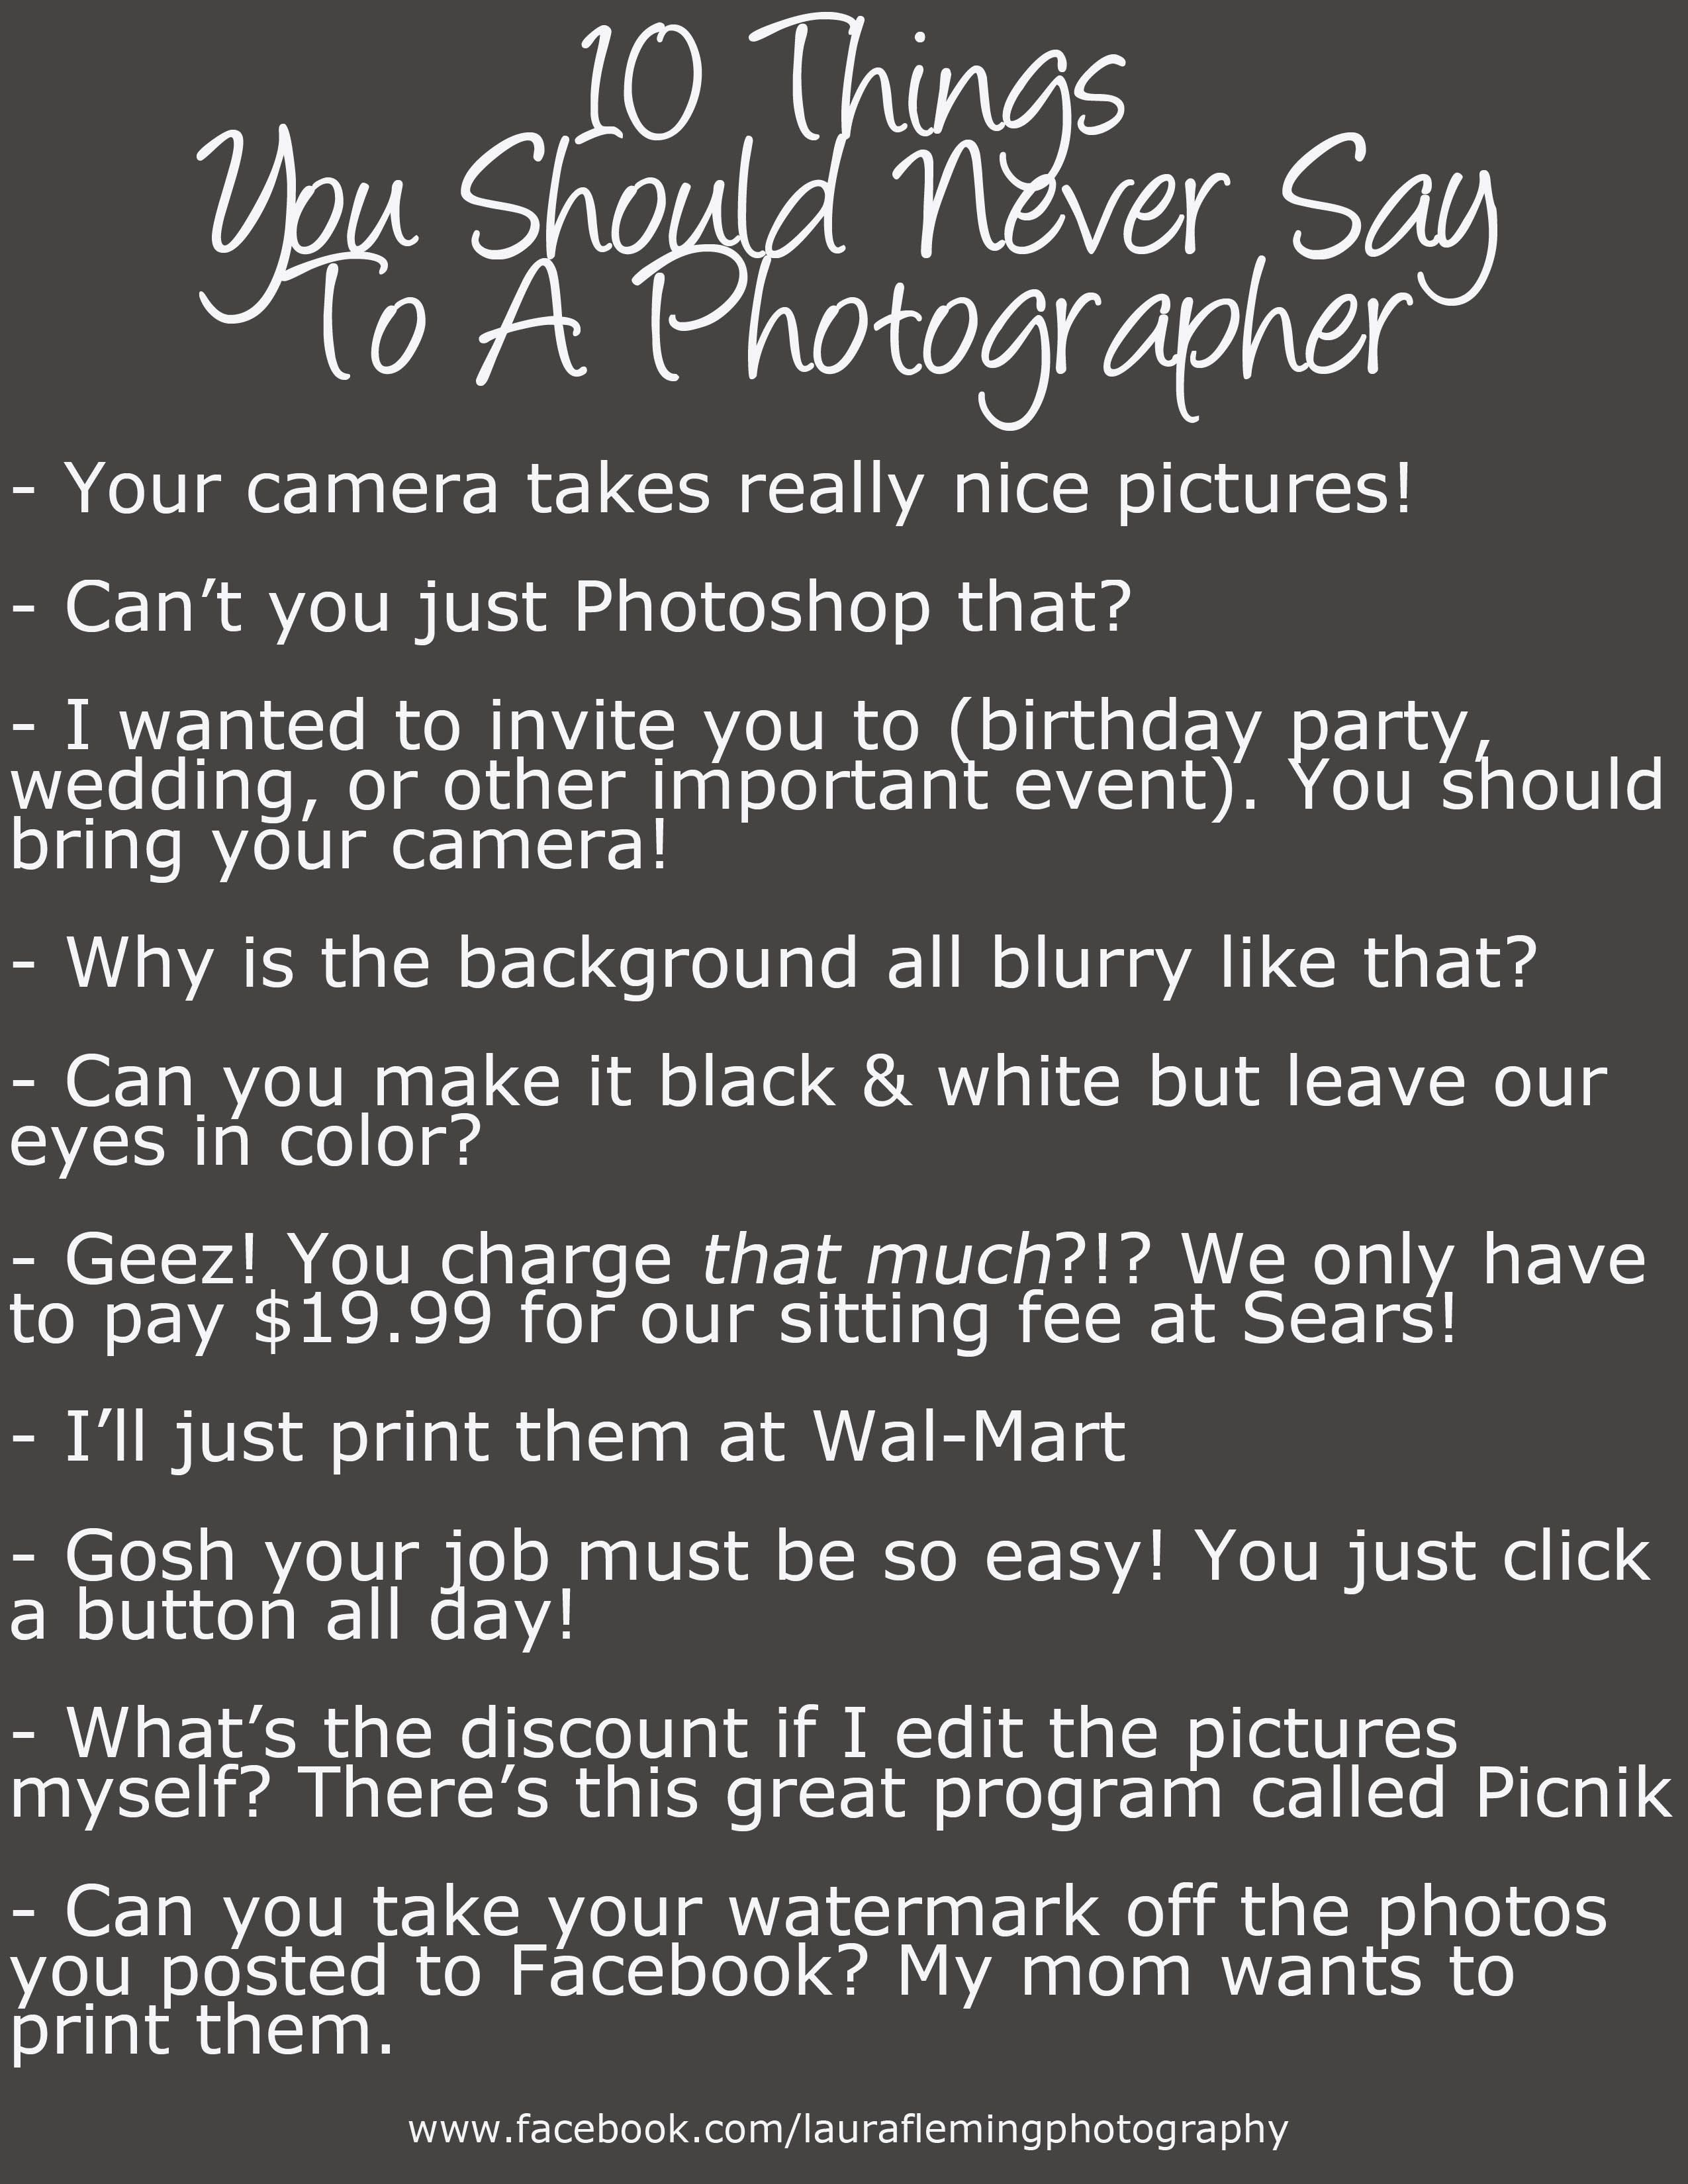 Just A Lighthearted Something To Make All My Photographer Friends